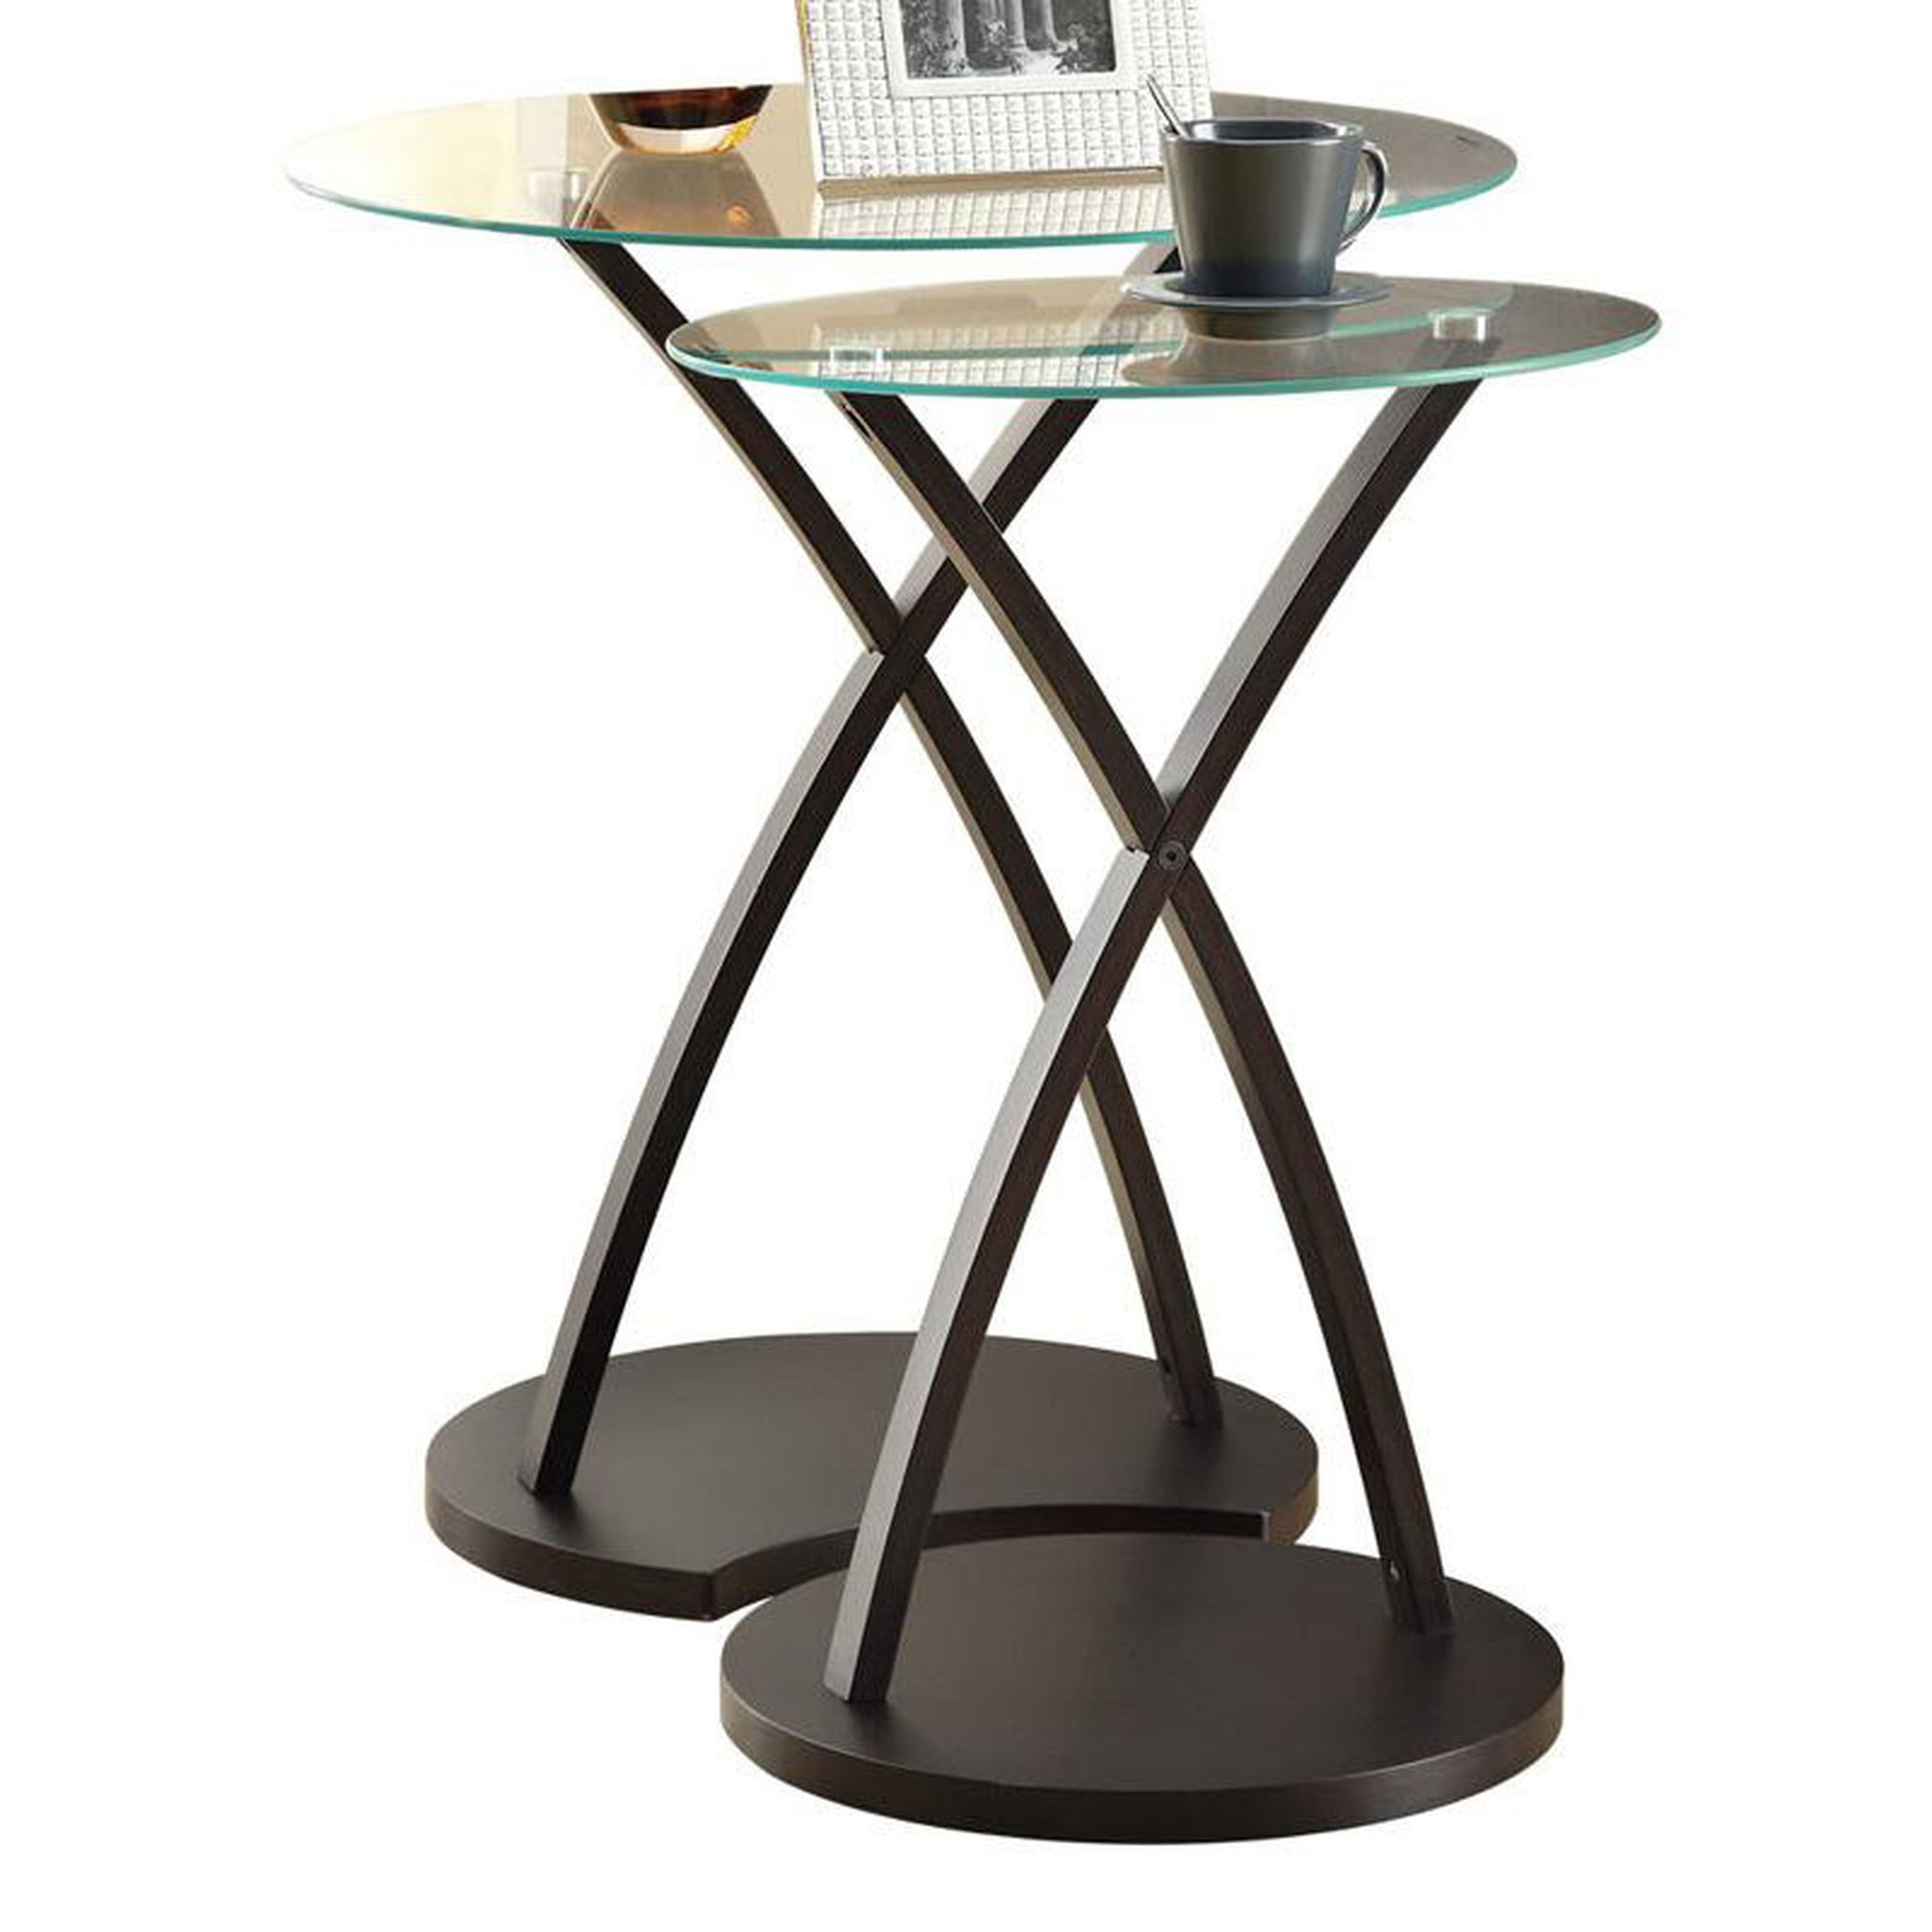 piece cappuccino nesting tables bizchair monarch specialties msp main bentwood accent table with tempered glass our set uttermost mirrors deck cover white round pedestal side